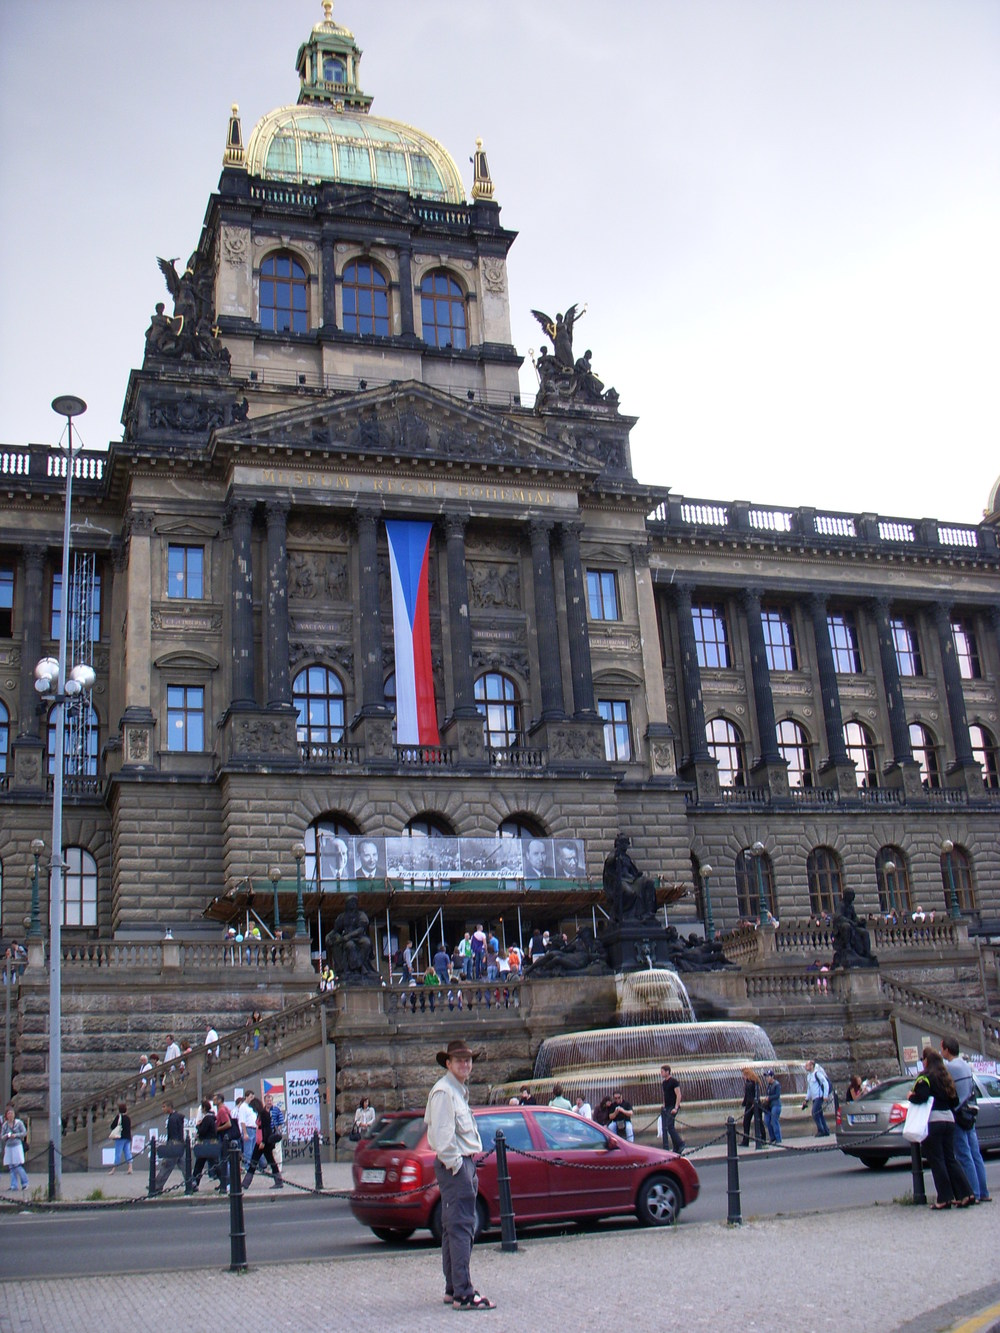 Trevor in Front of the National Museum in Prague